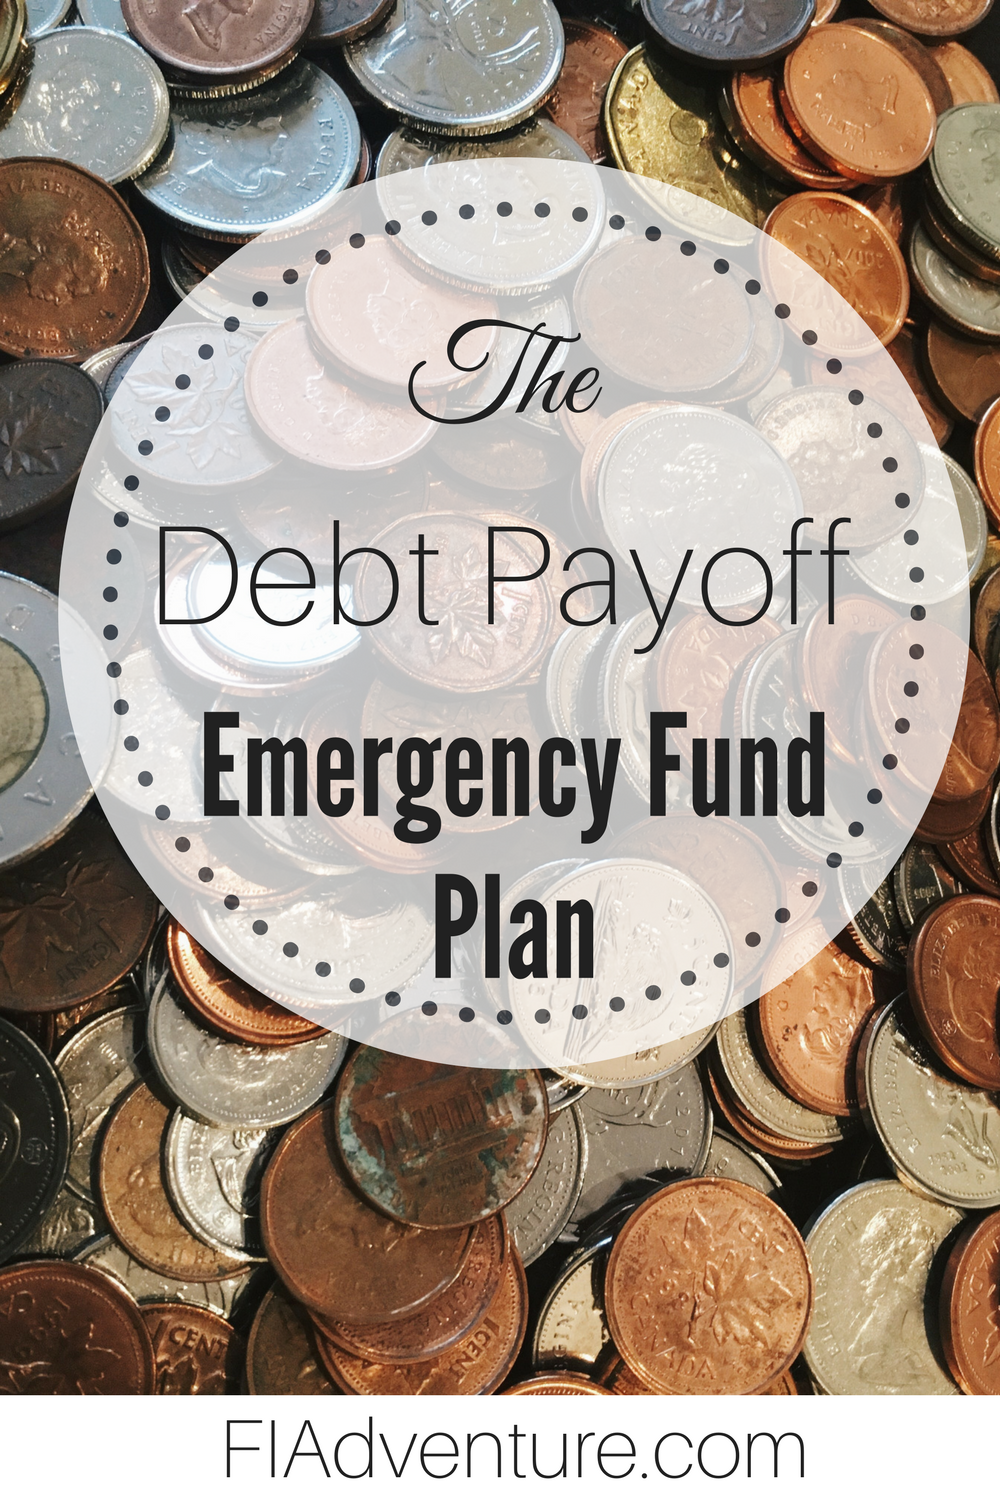 If you've read anything about getting your finances in order you've probably been told to save a least a little in an emergency fund. I'm here to tell you that's only a little true. The Debt Payoff Method of Emergency Fund savings is a much more practical and